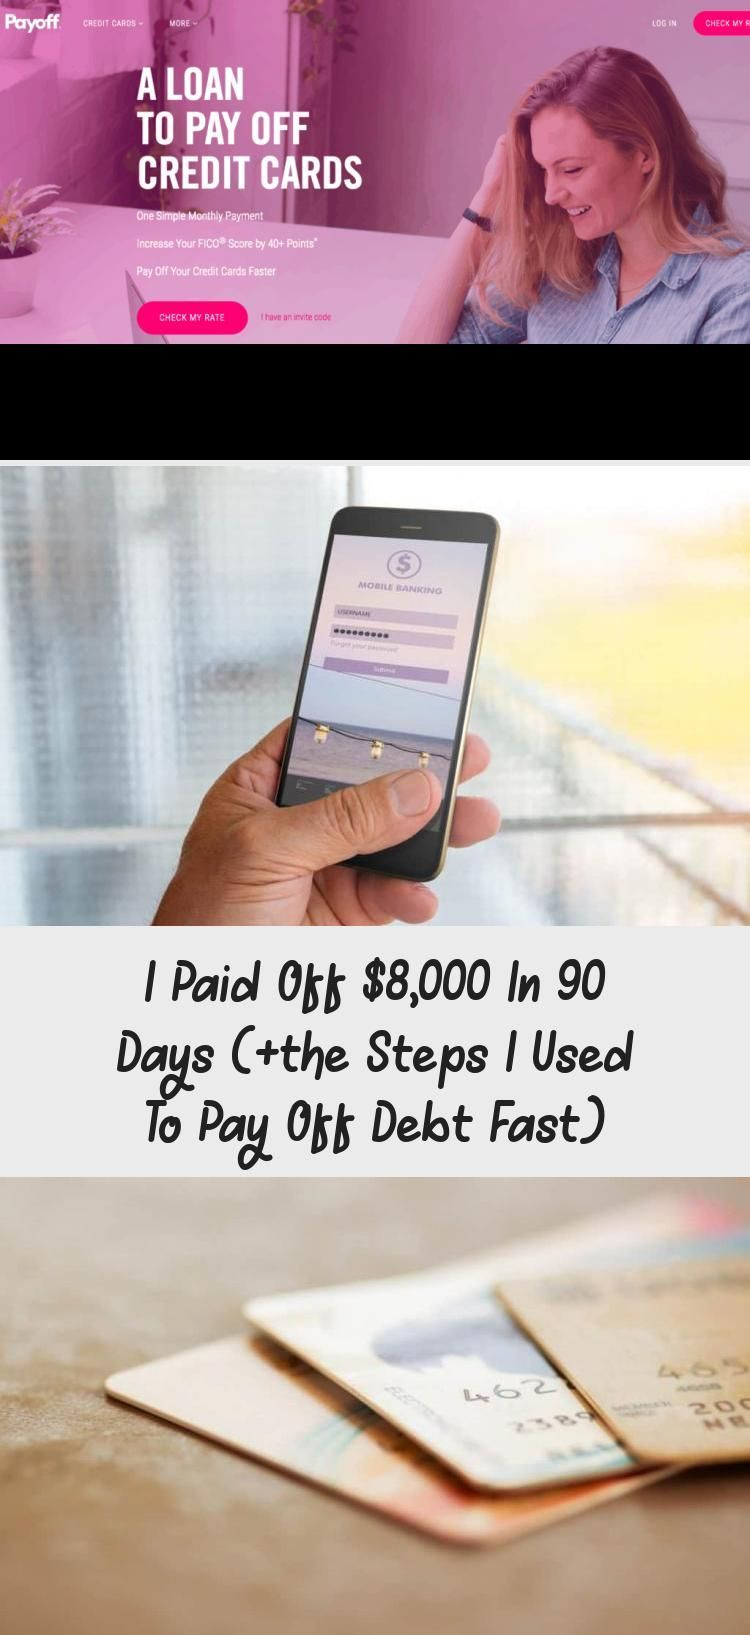 I Paid Off 8000 In 90 Days The Steps I Used To Pay Off Debt Fast Credit Score Credit Card Interest Paying Off Credit Cards Credit Card Credit Cards Debt